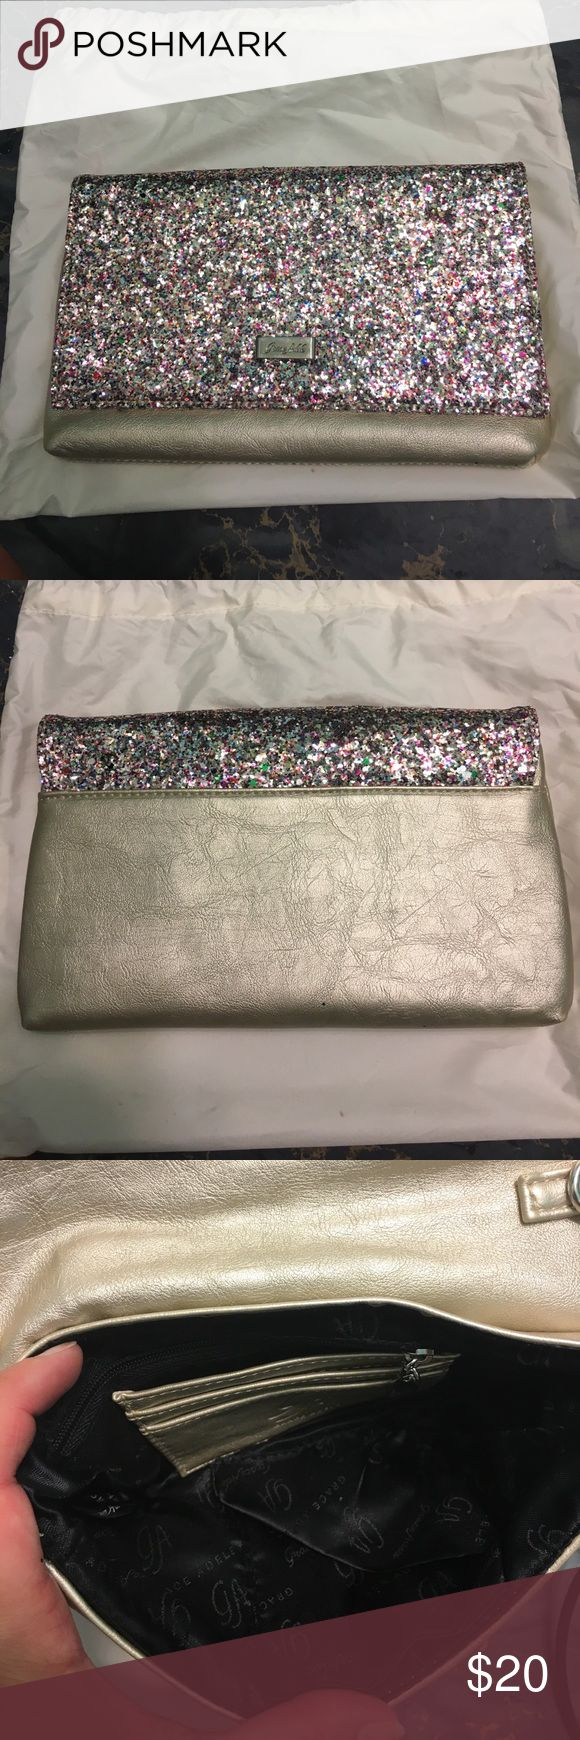 Glitter Clutch This super sparkly glitter clutch has never been used! It's so sparkly and pretty! Made by Grace Adele and comes with a chain! Perfect for any dress up or dress down occasion! Grace Adele Bags Clutches & Wristlets